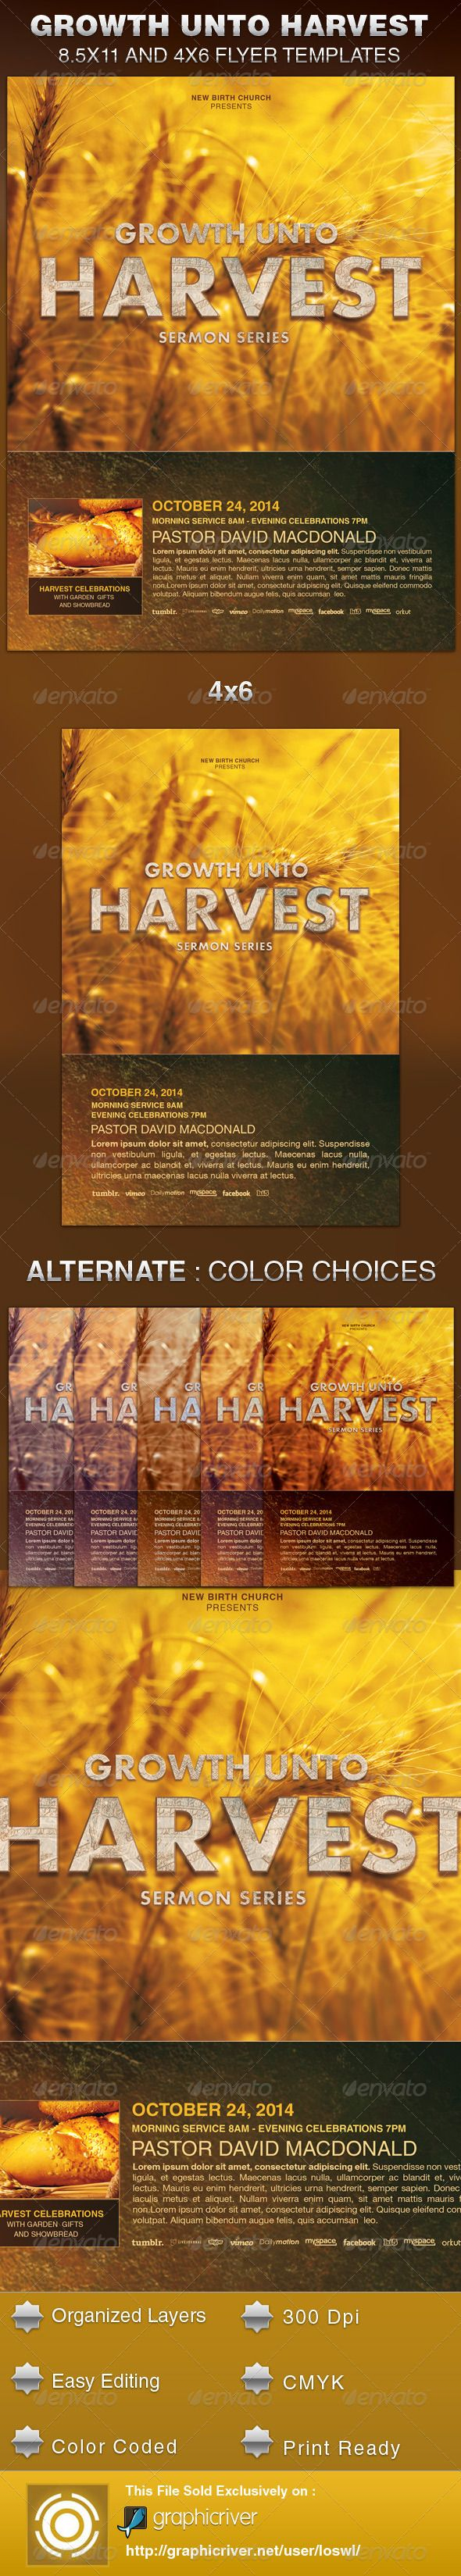 Growth unto Harvest Church Flyer Template — Photoshop PSD #christian #gospel • Available here → https://graphicriver.net/item/growth-unto-harvest-church-flyer-template/6001484?ref=pxcr